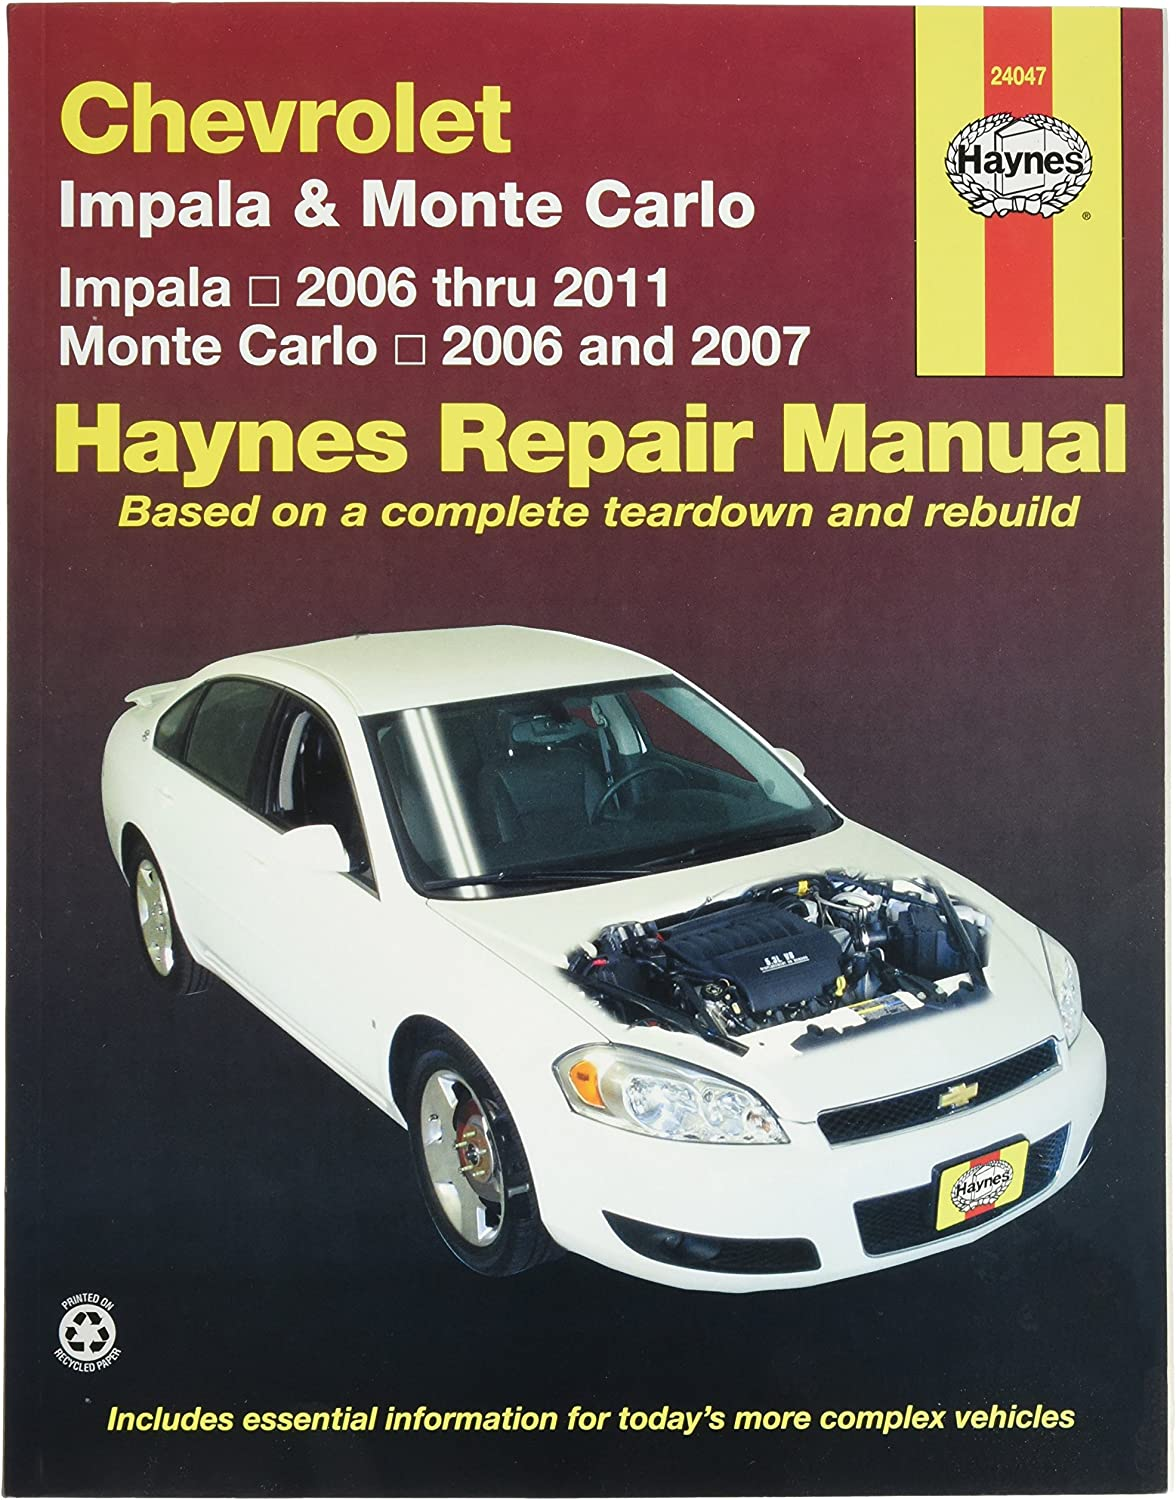 Chevrolet Impala (2006-2011) and Monte Carlo (2006-2007) Haynes Repair Manual